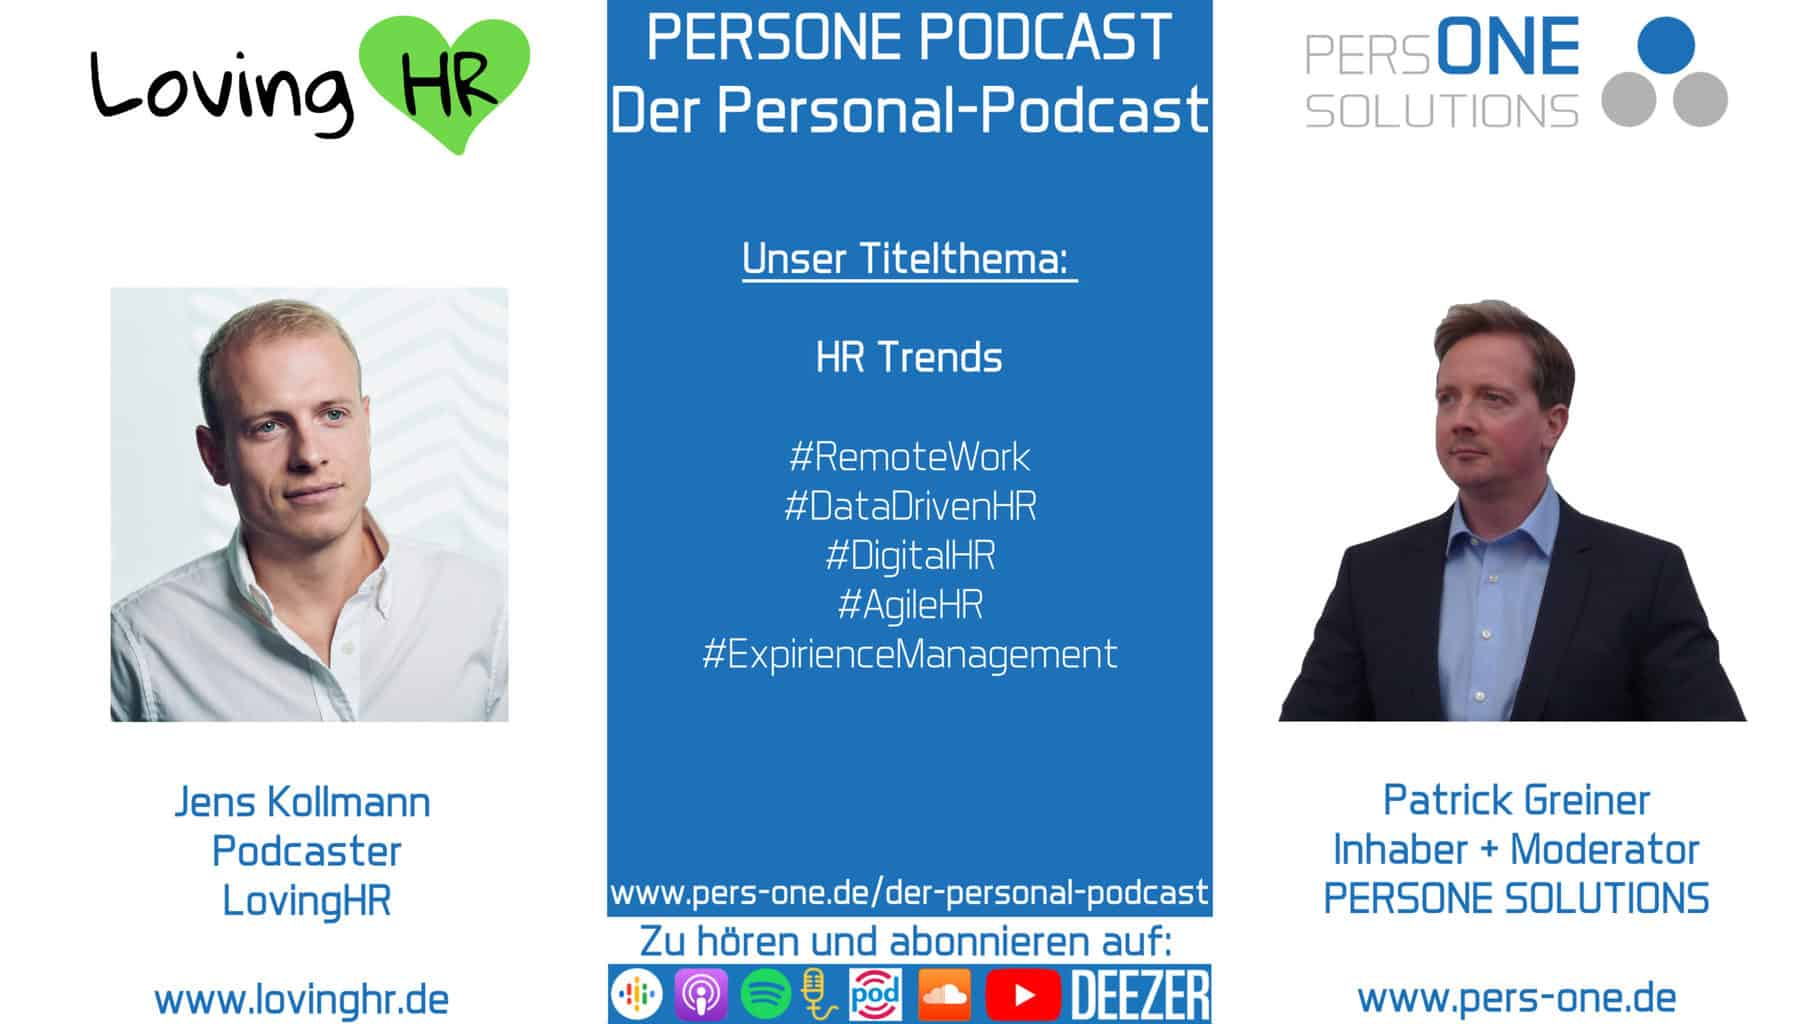 Kollmann, Jens_LovingHR_Interview-Podcast_SM Layout_PERSONE PODCAST